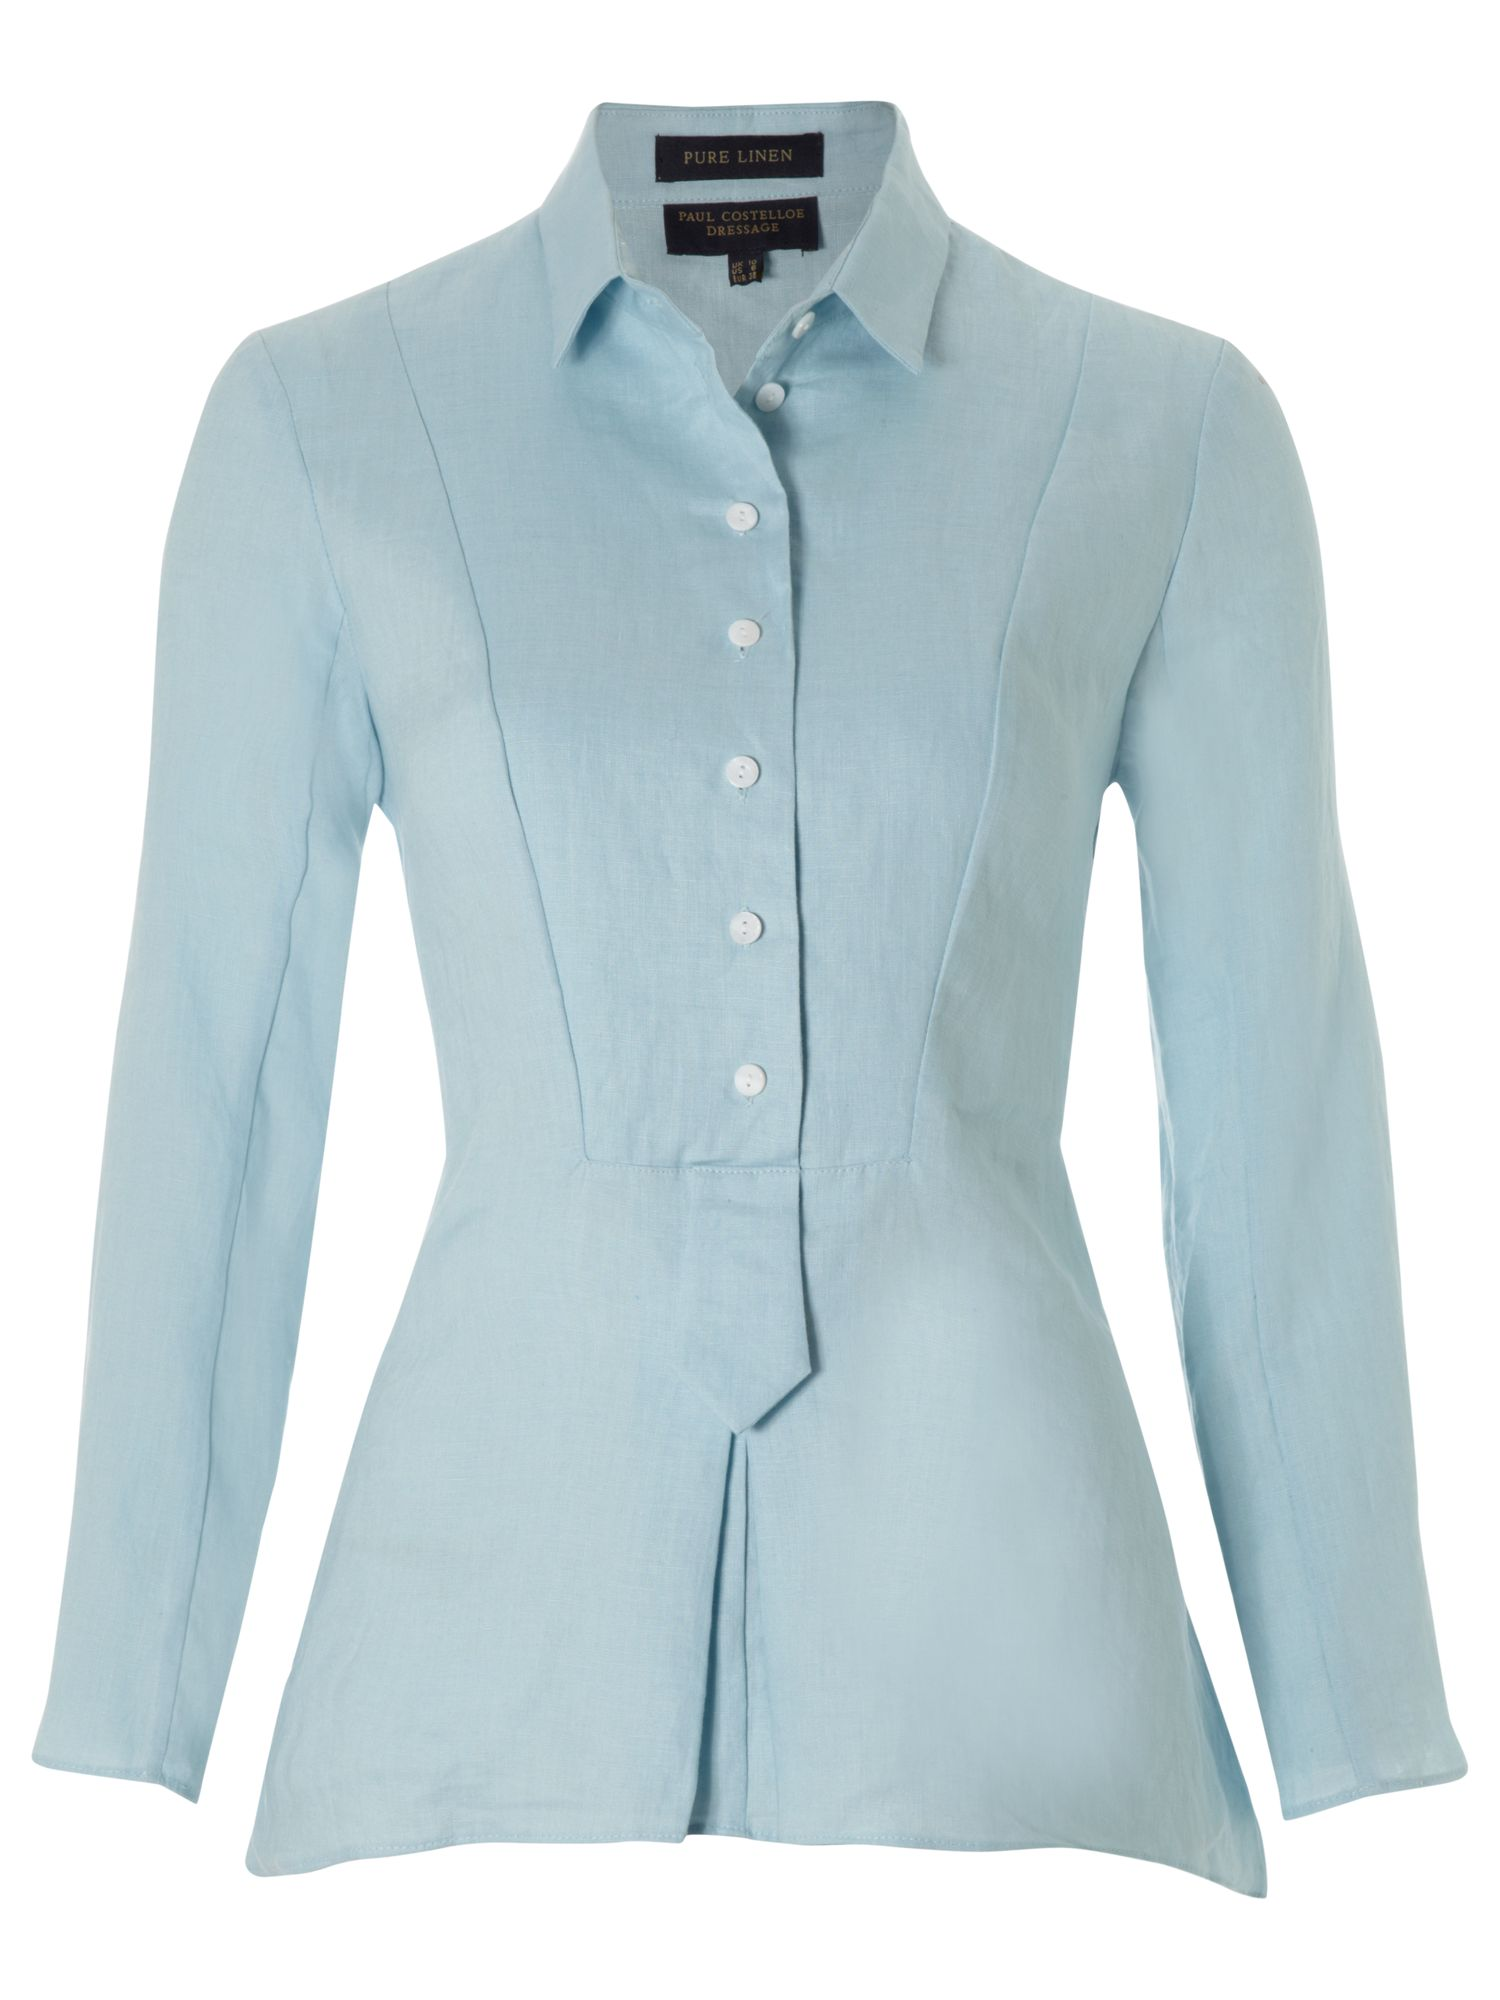 Paul Costelloe Plaquet front blouse - Sky Blue 10,10,14,14,12,12 product image